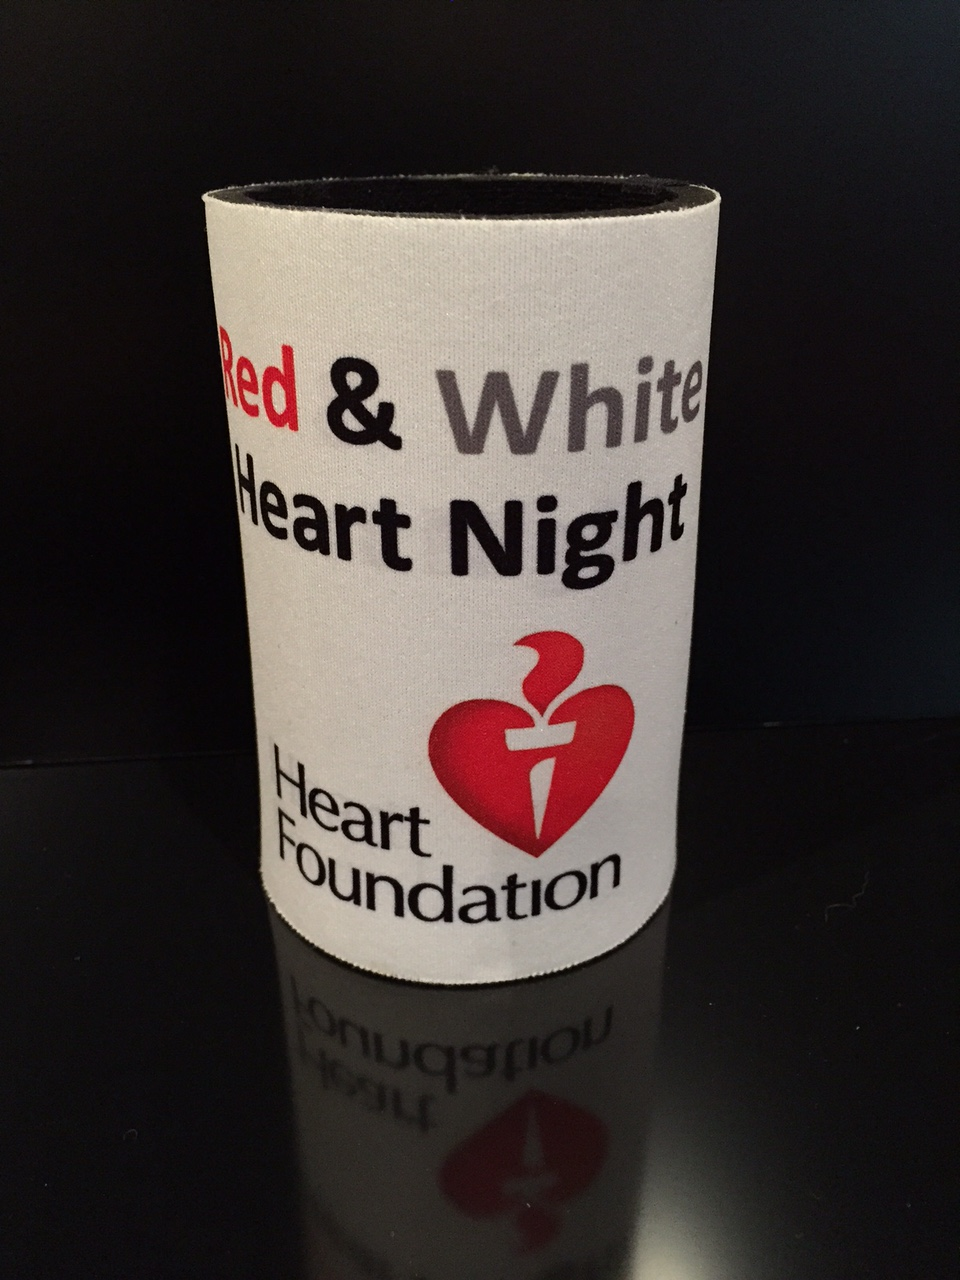 Red & White Heart Night